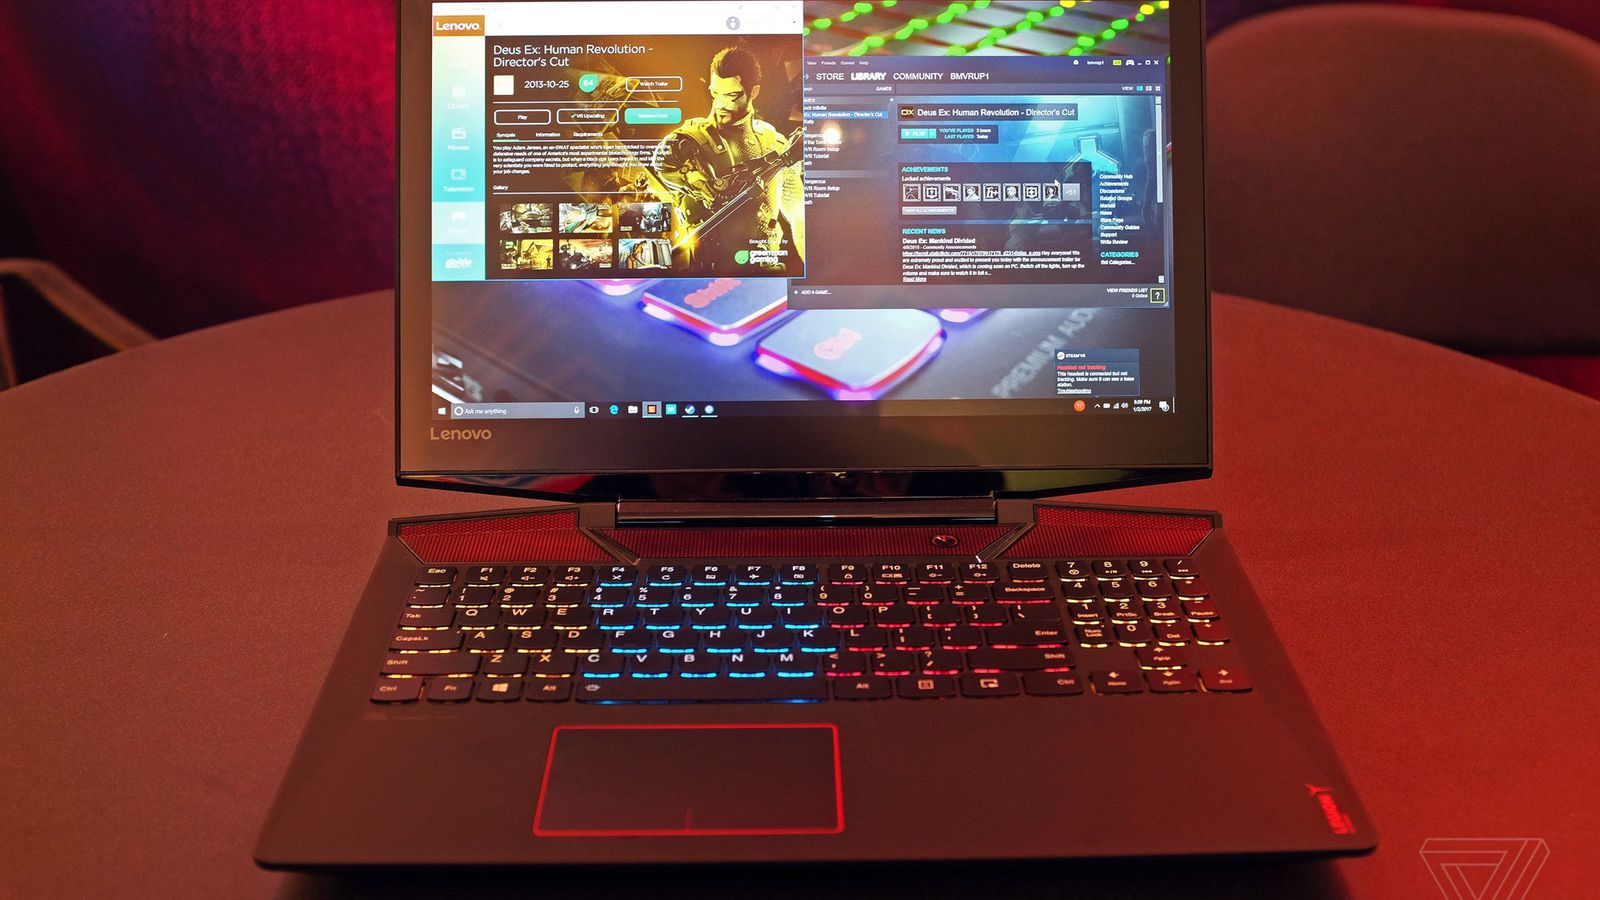 Hd Gamer Wallpaper Lenovo Launches Legion Gaming Brand With A Couple Of